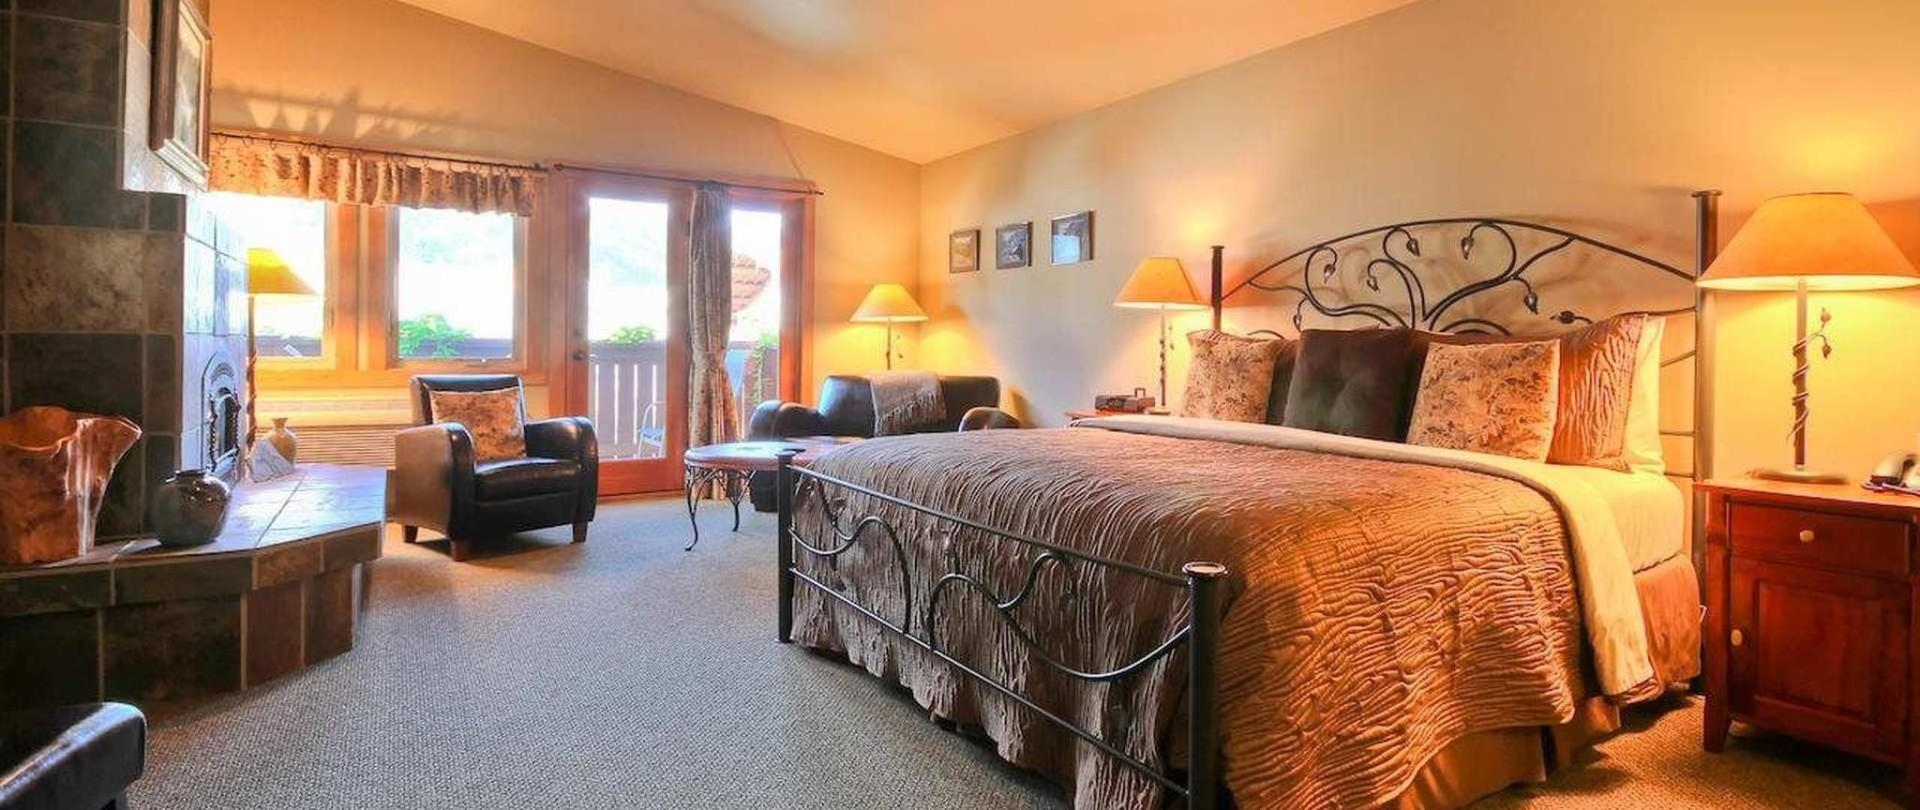 Hotels In Leavenworth Wa Hotel Pension Anna United States Of America